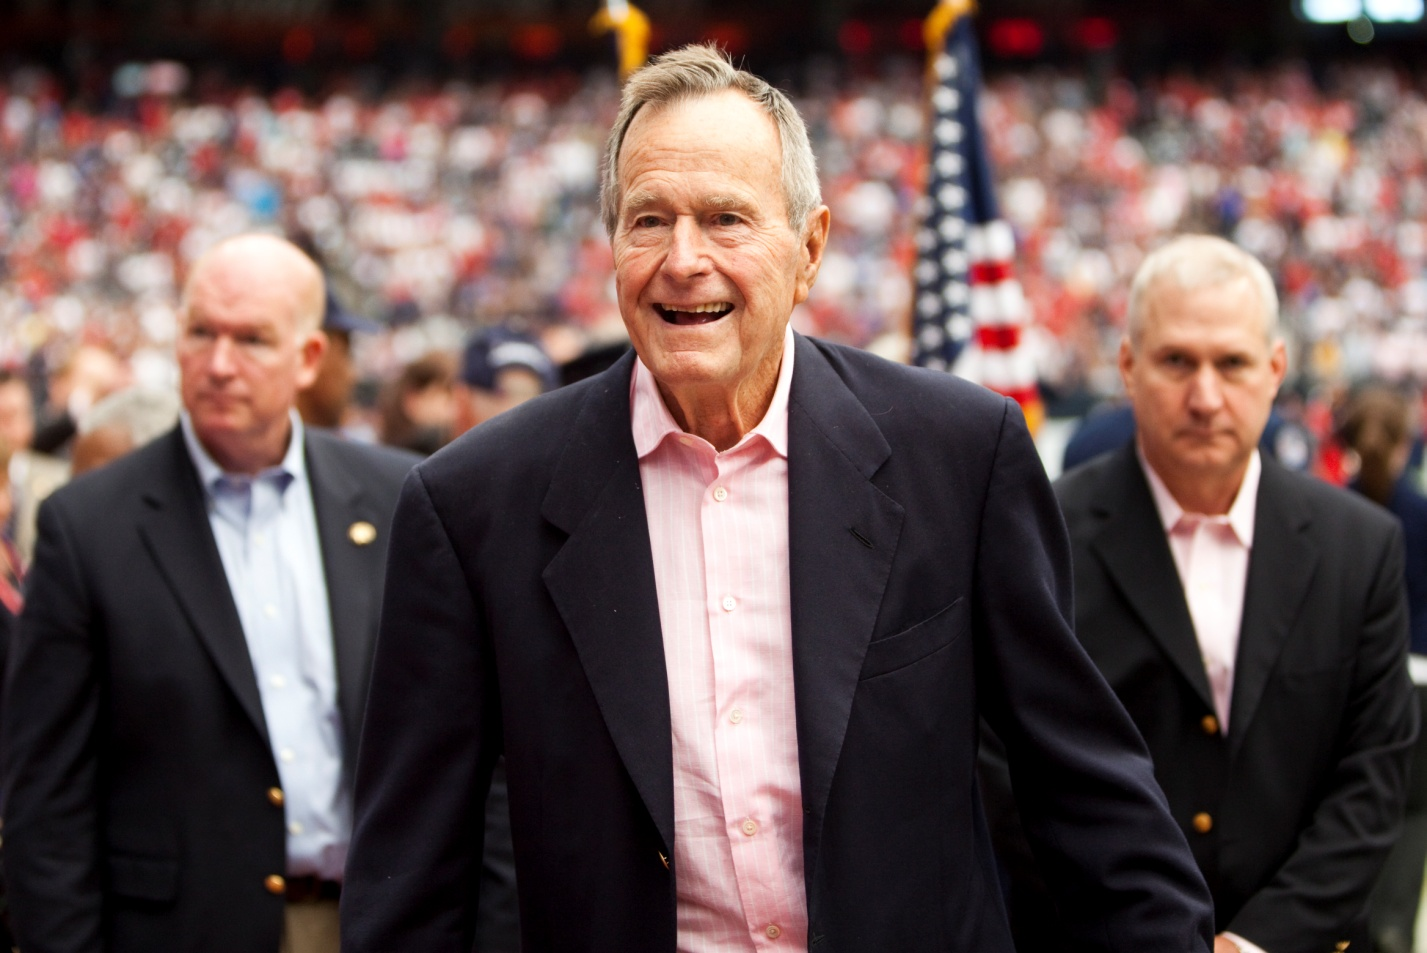 George H.W. Bush urgently hospitalized